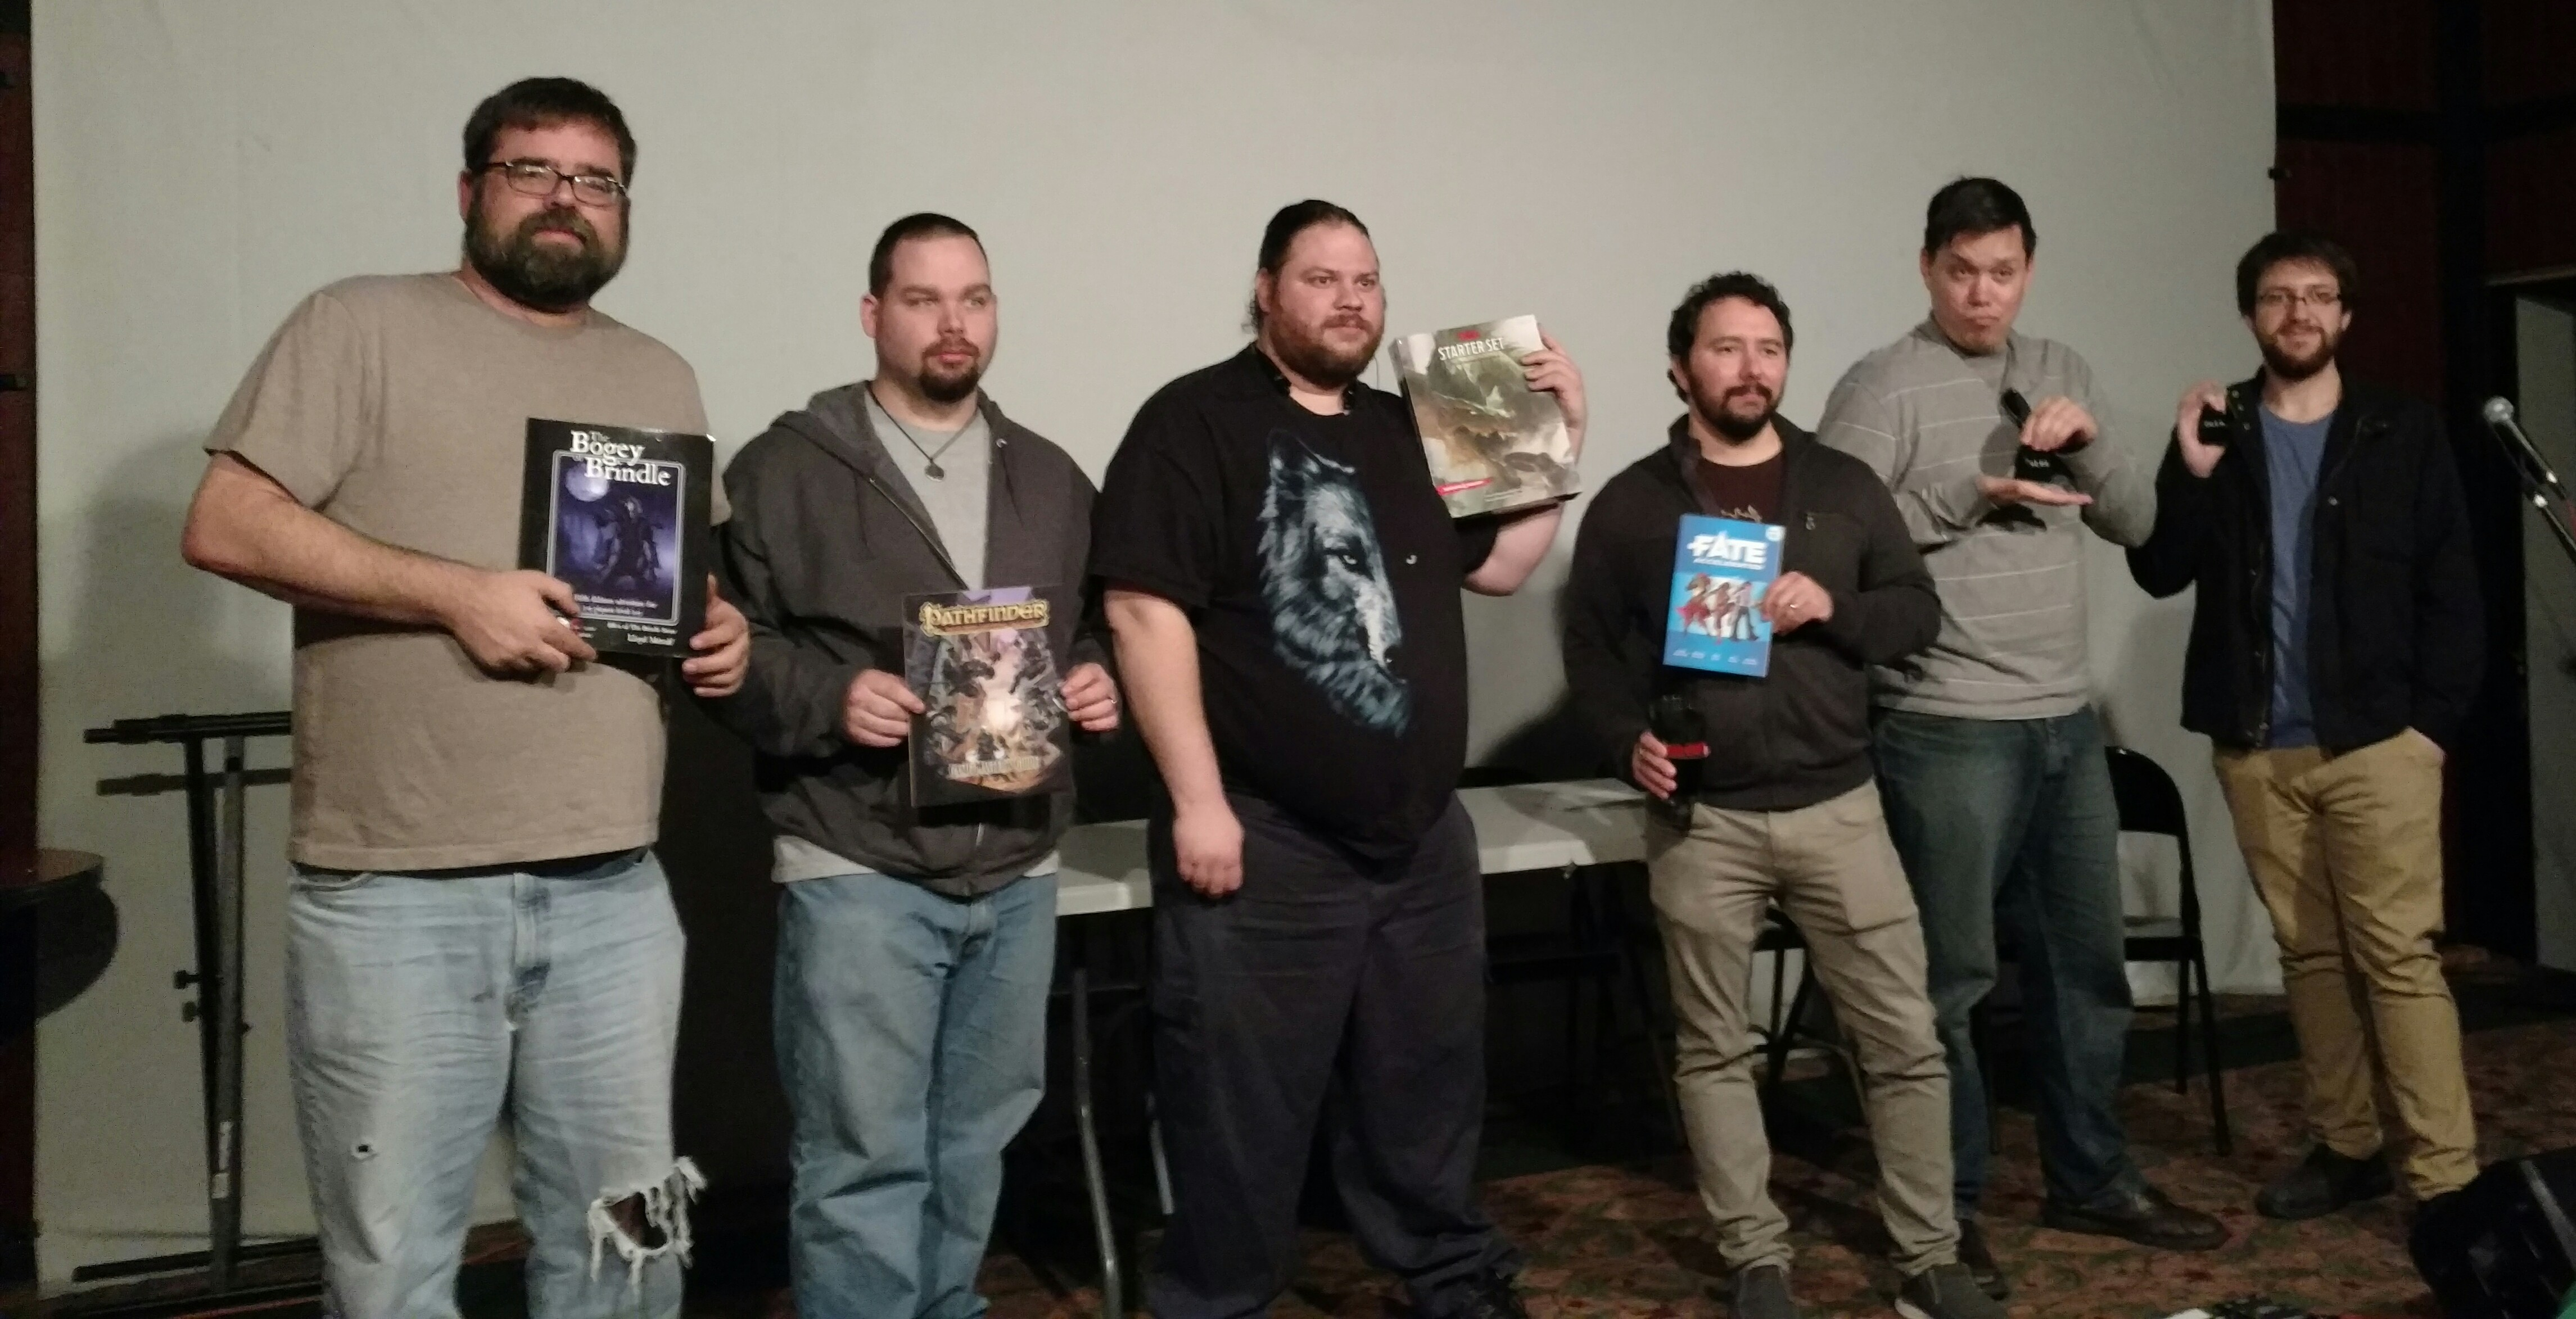 Audience winners from our GM Masterclass workshop event holding dice, game manuals and other giveaway prizes.